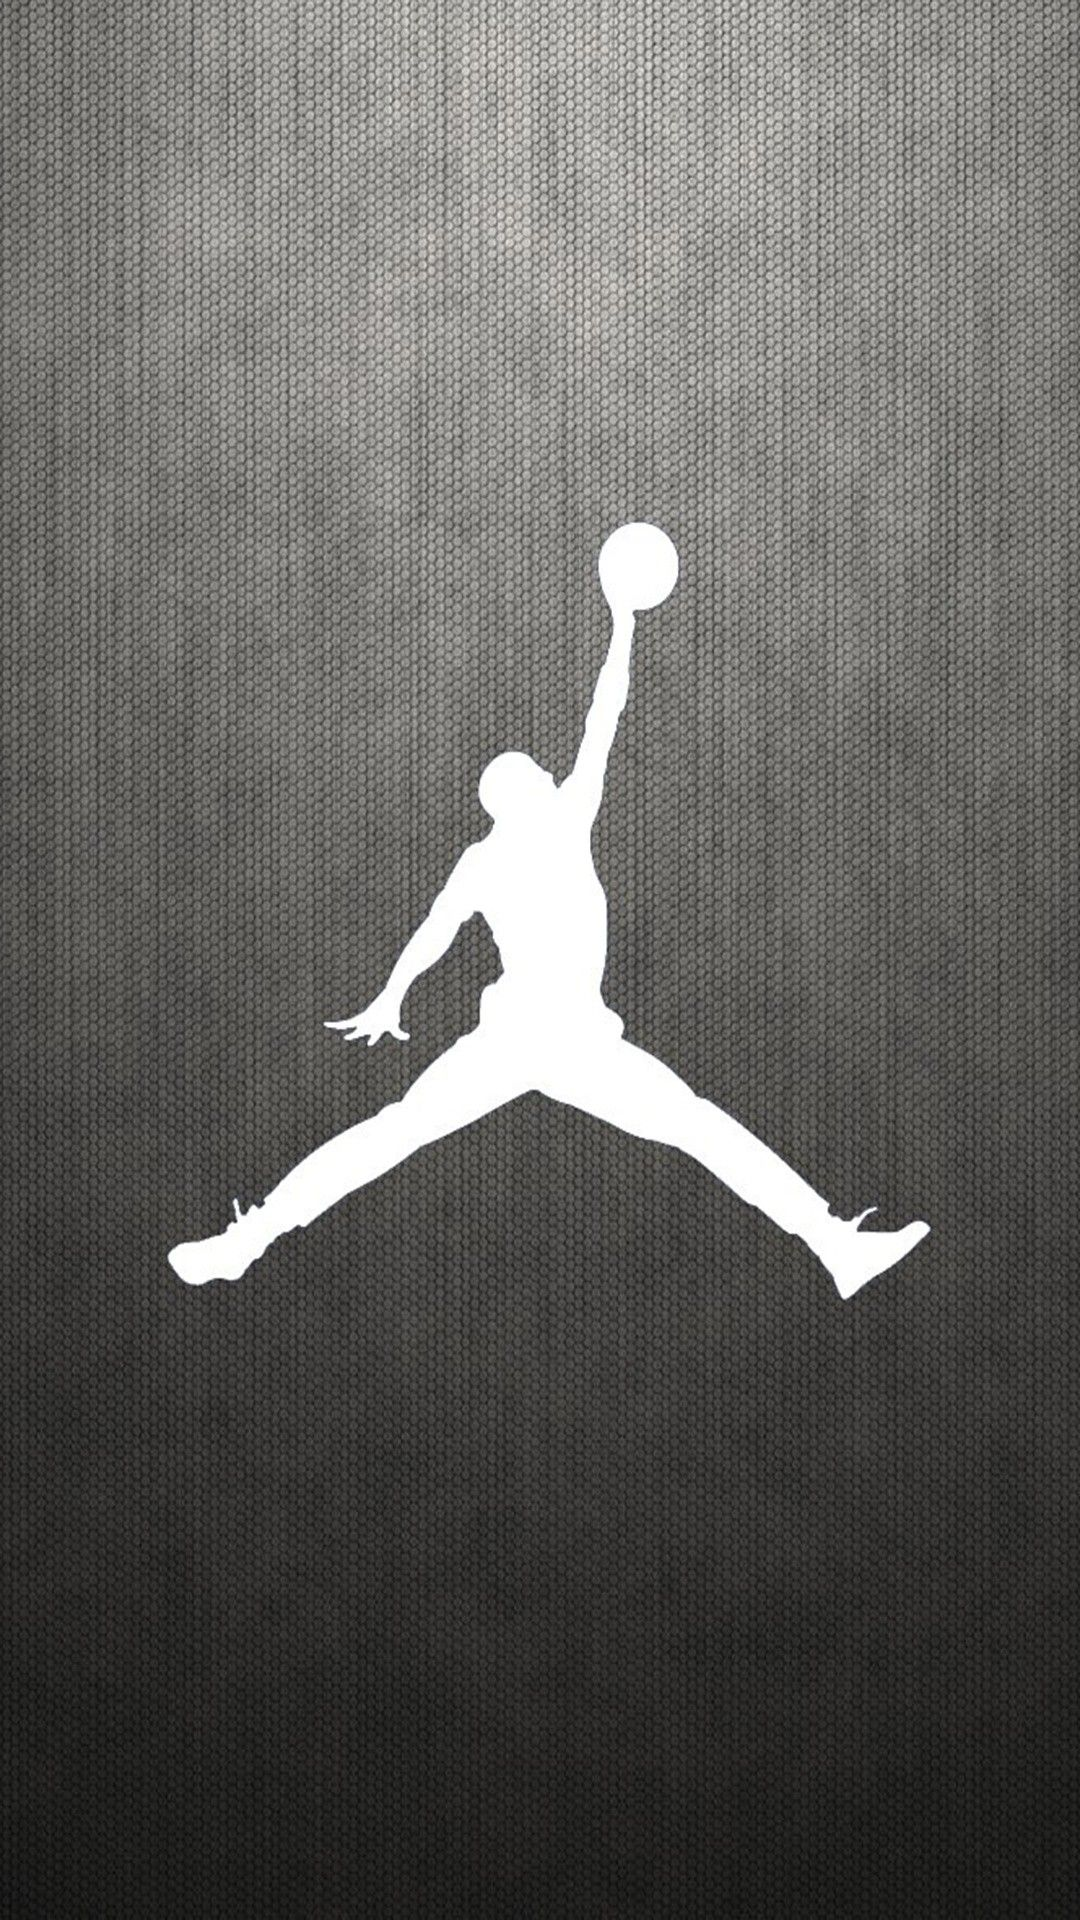 lowest price e3c8c 26901 Jordan Wallpaper - 1080x1920 Huawei Honor 9 Wallpaper